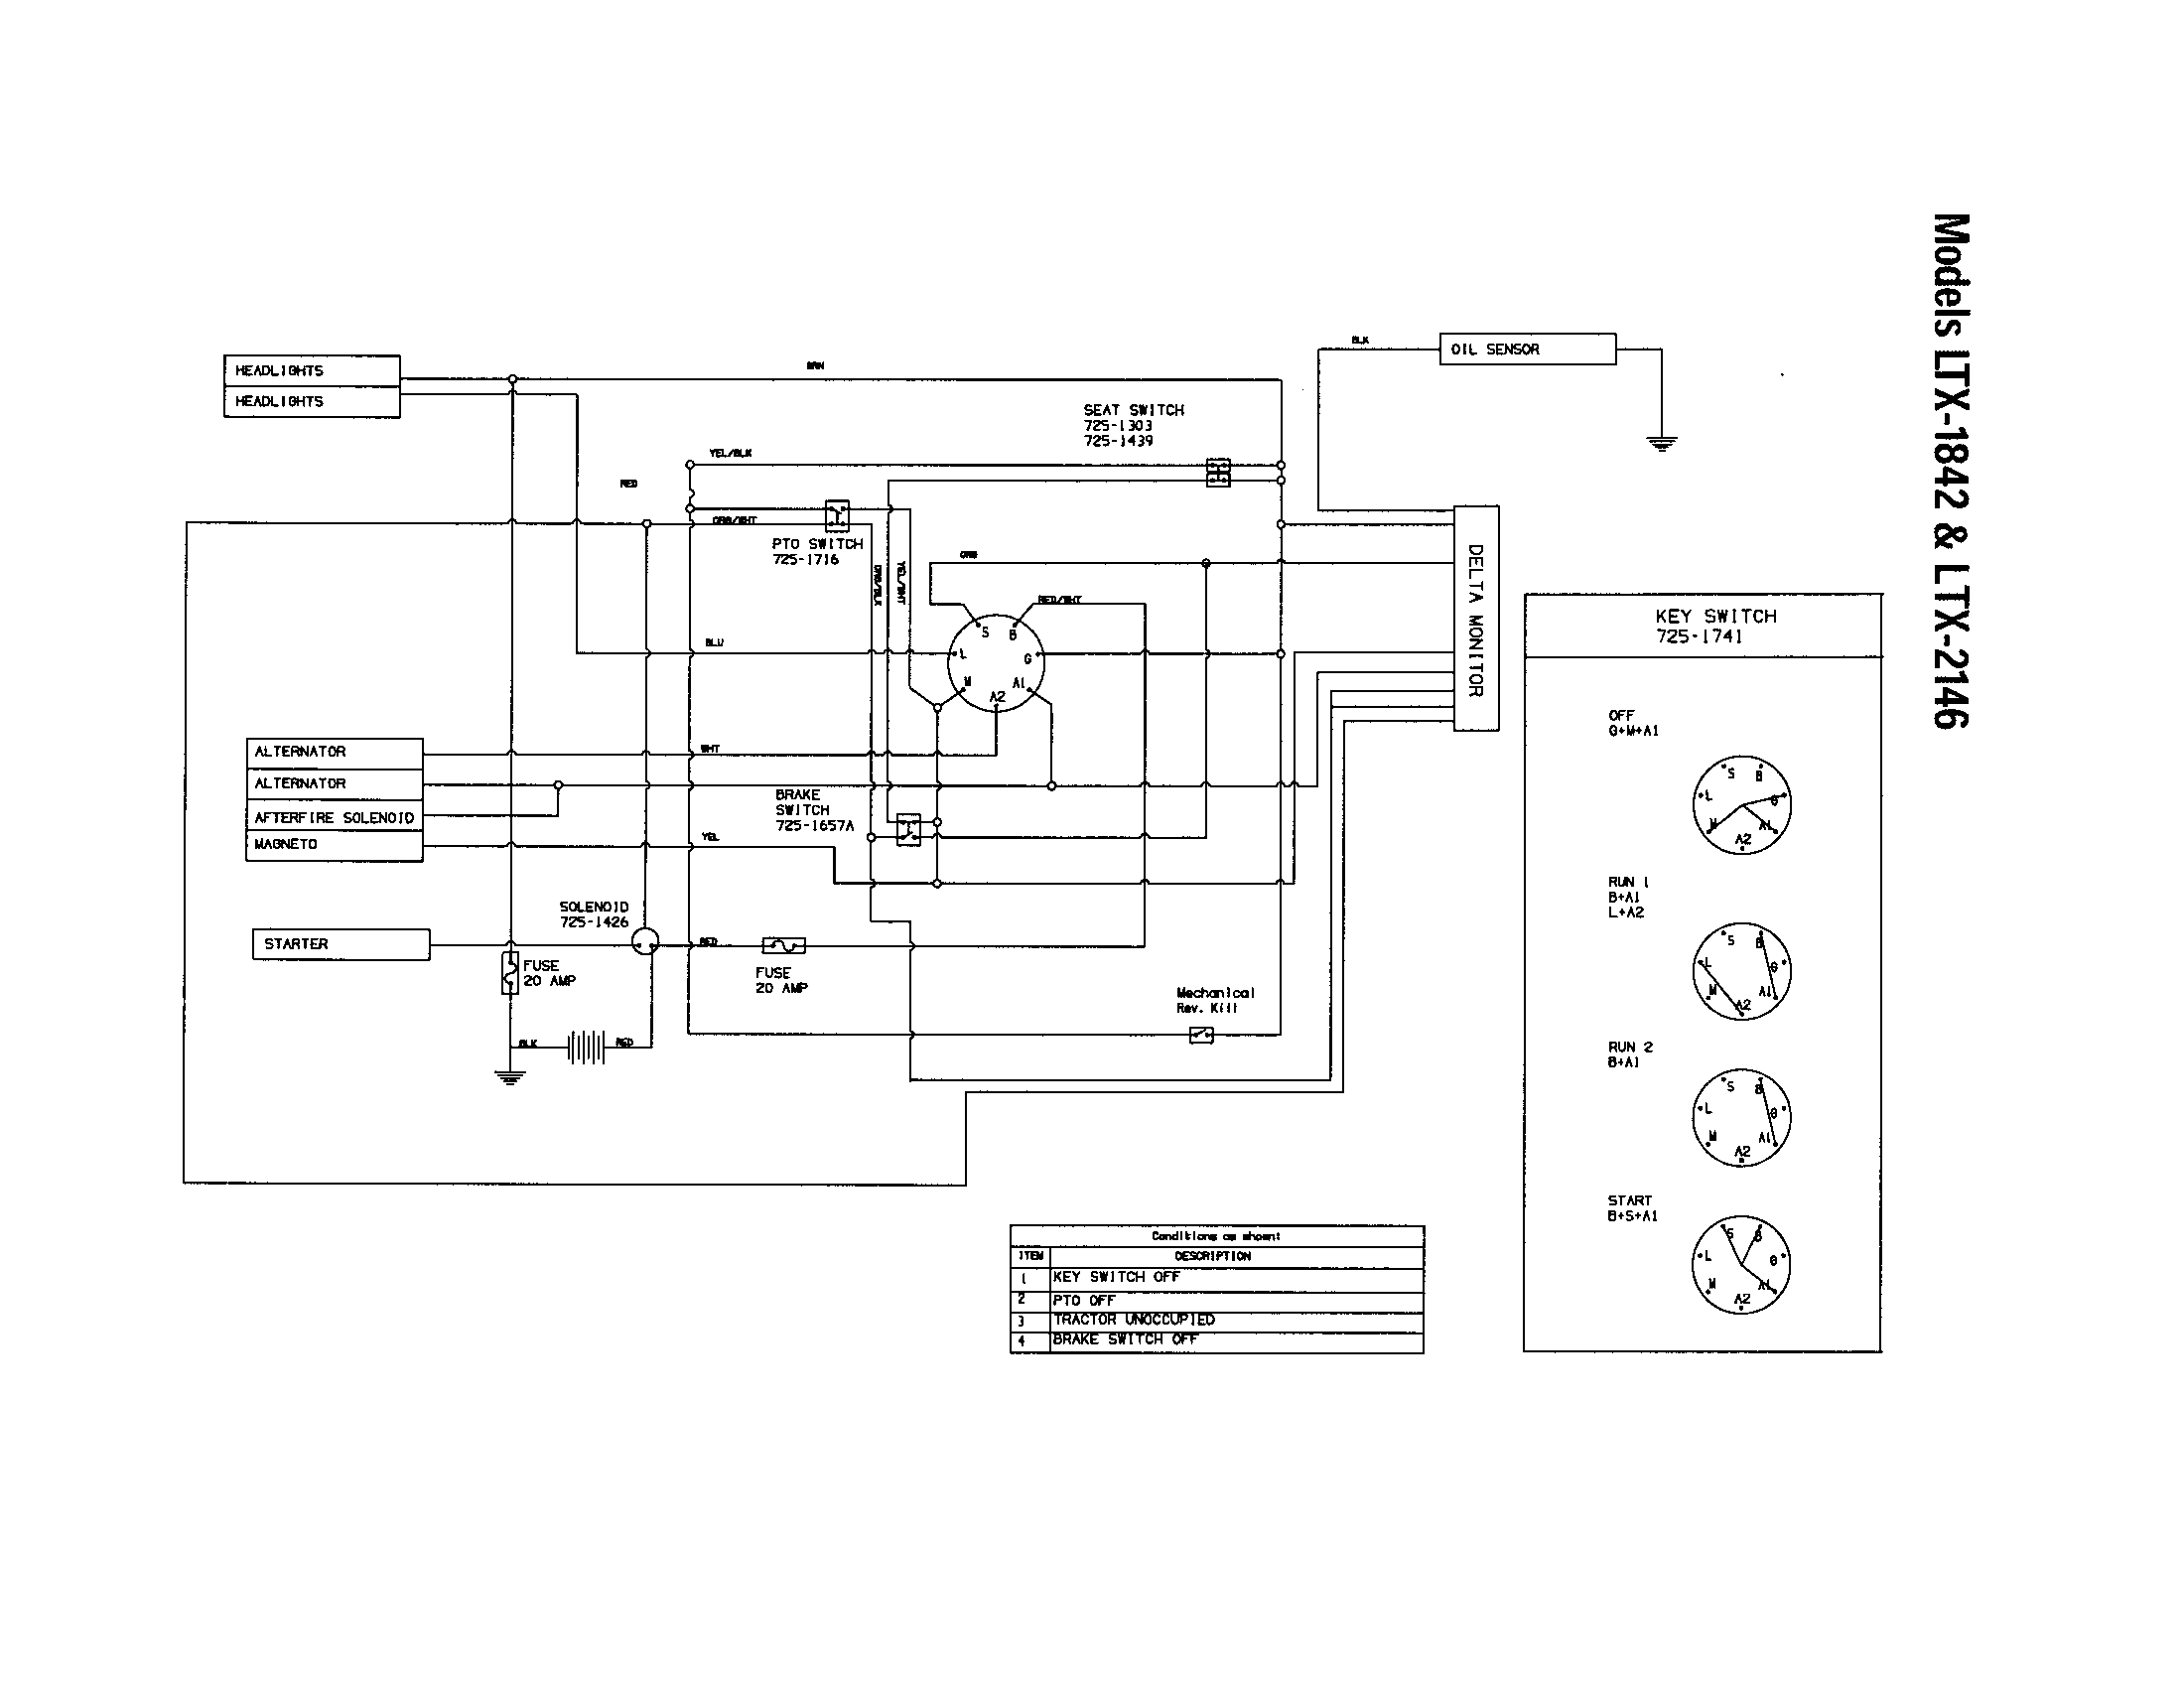 Garden Spa Wiring Diagram Circuit Connection Coleman Images Gallery